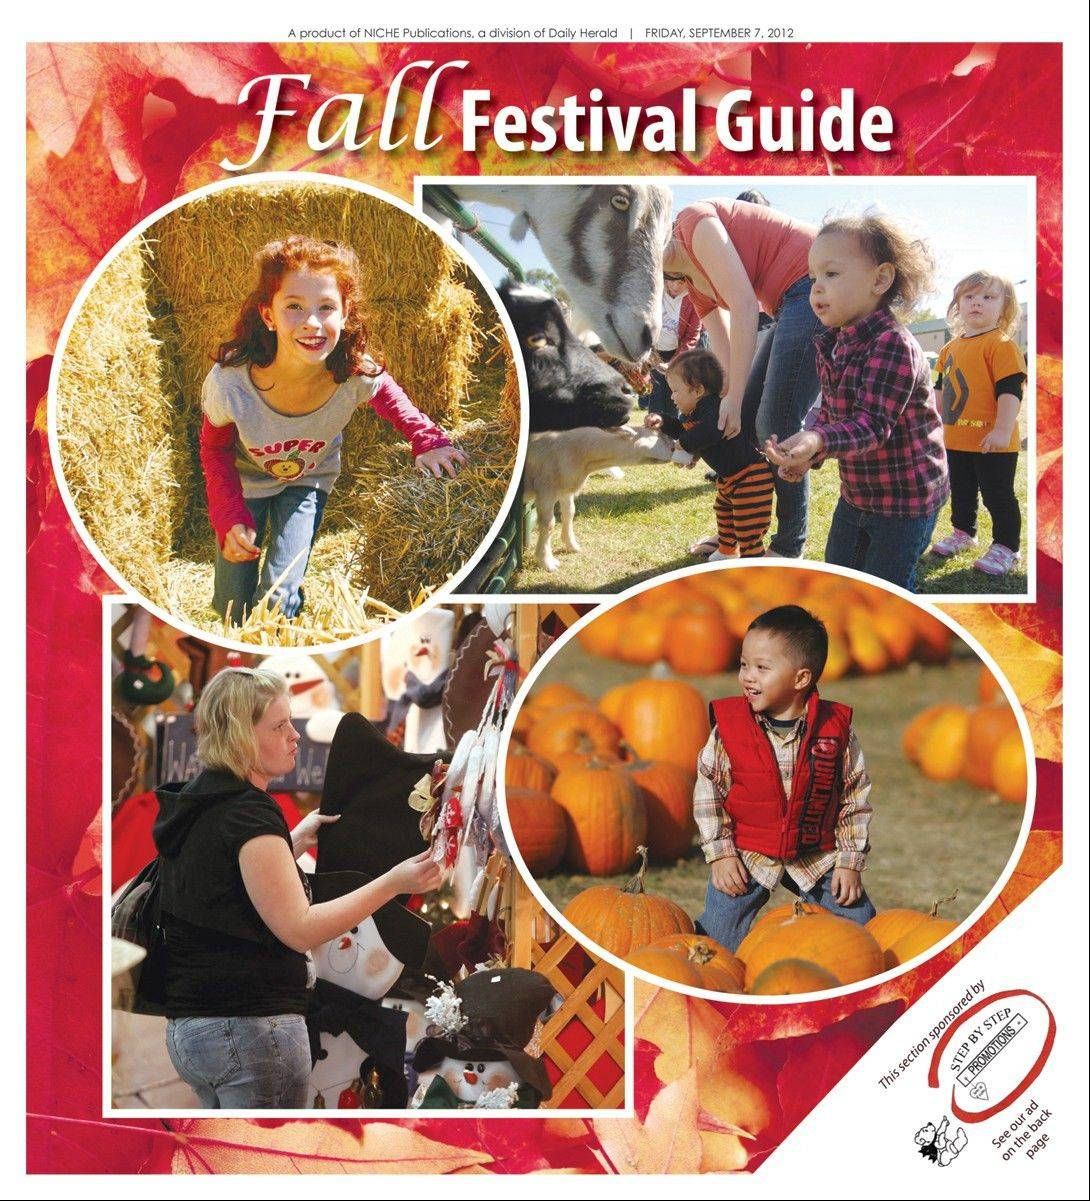 Look for our Fall Festival Guide inside today's Daily Herald.